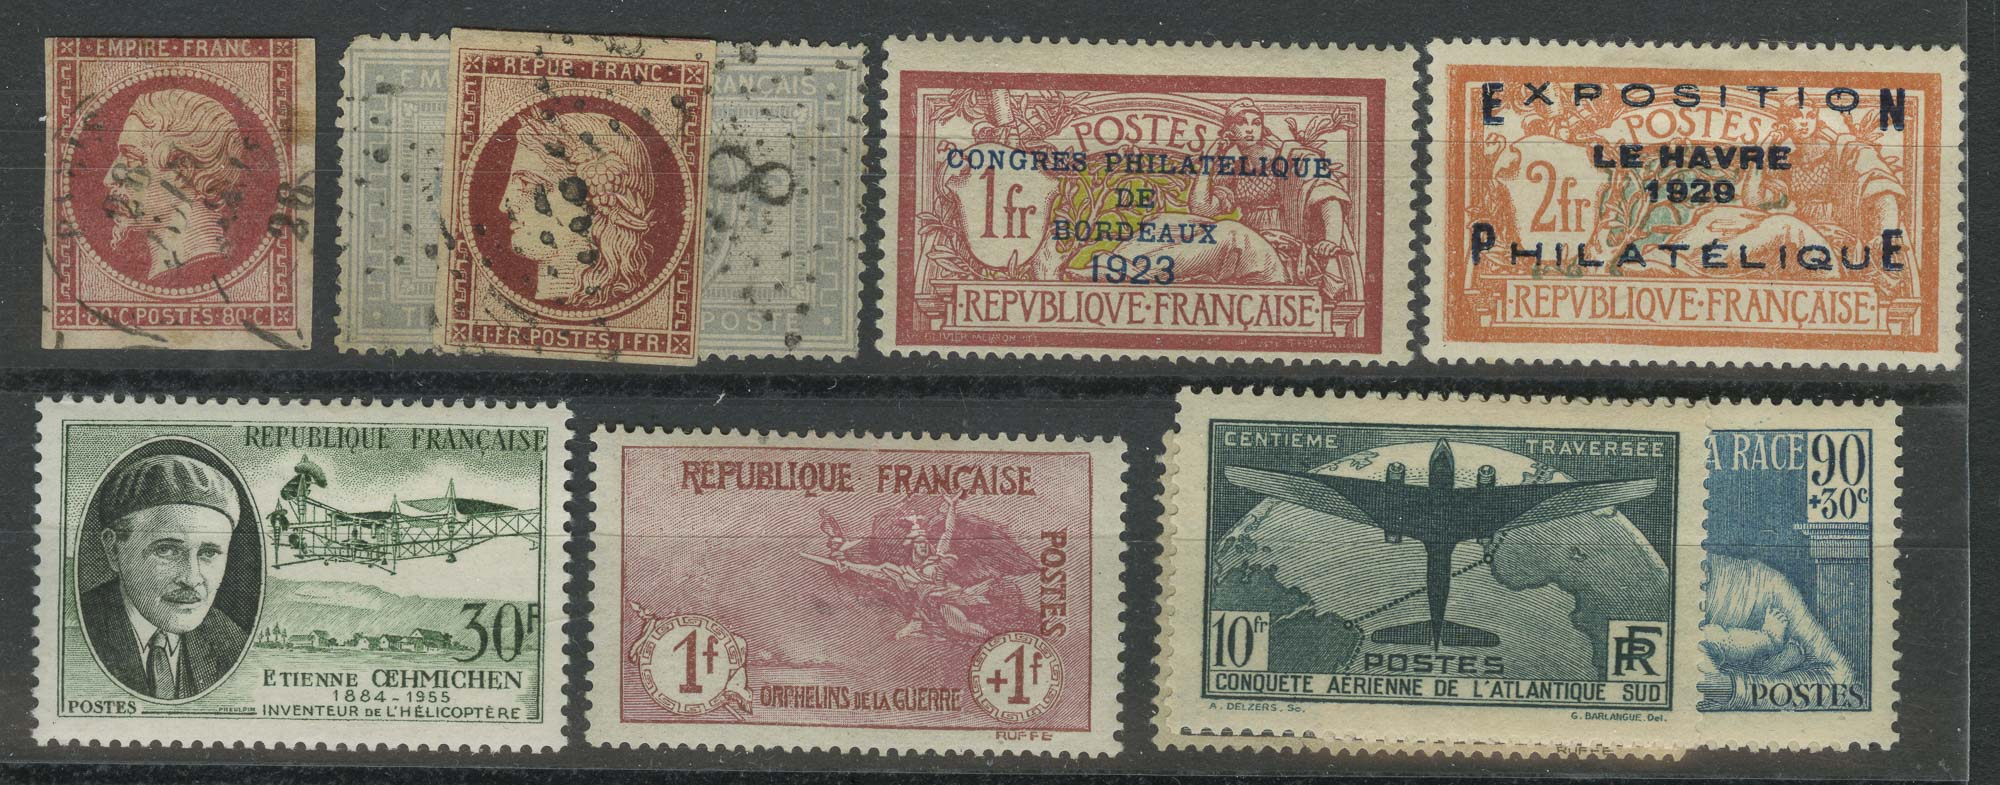 Lot image - France Postage Stamp Collection